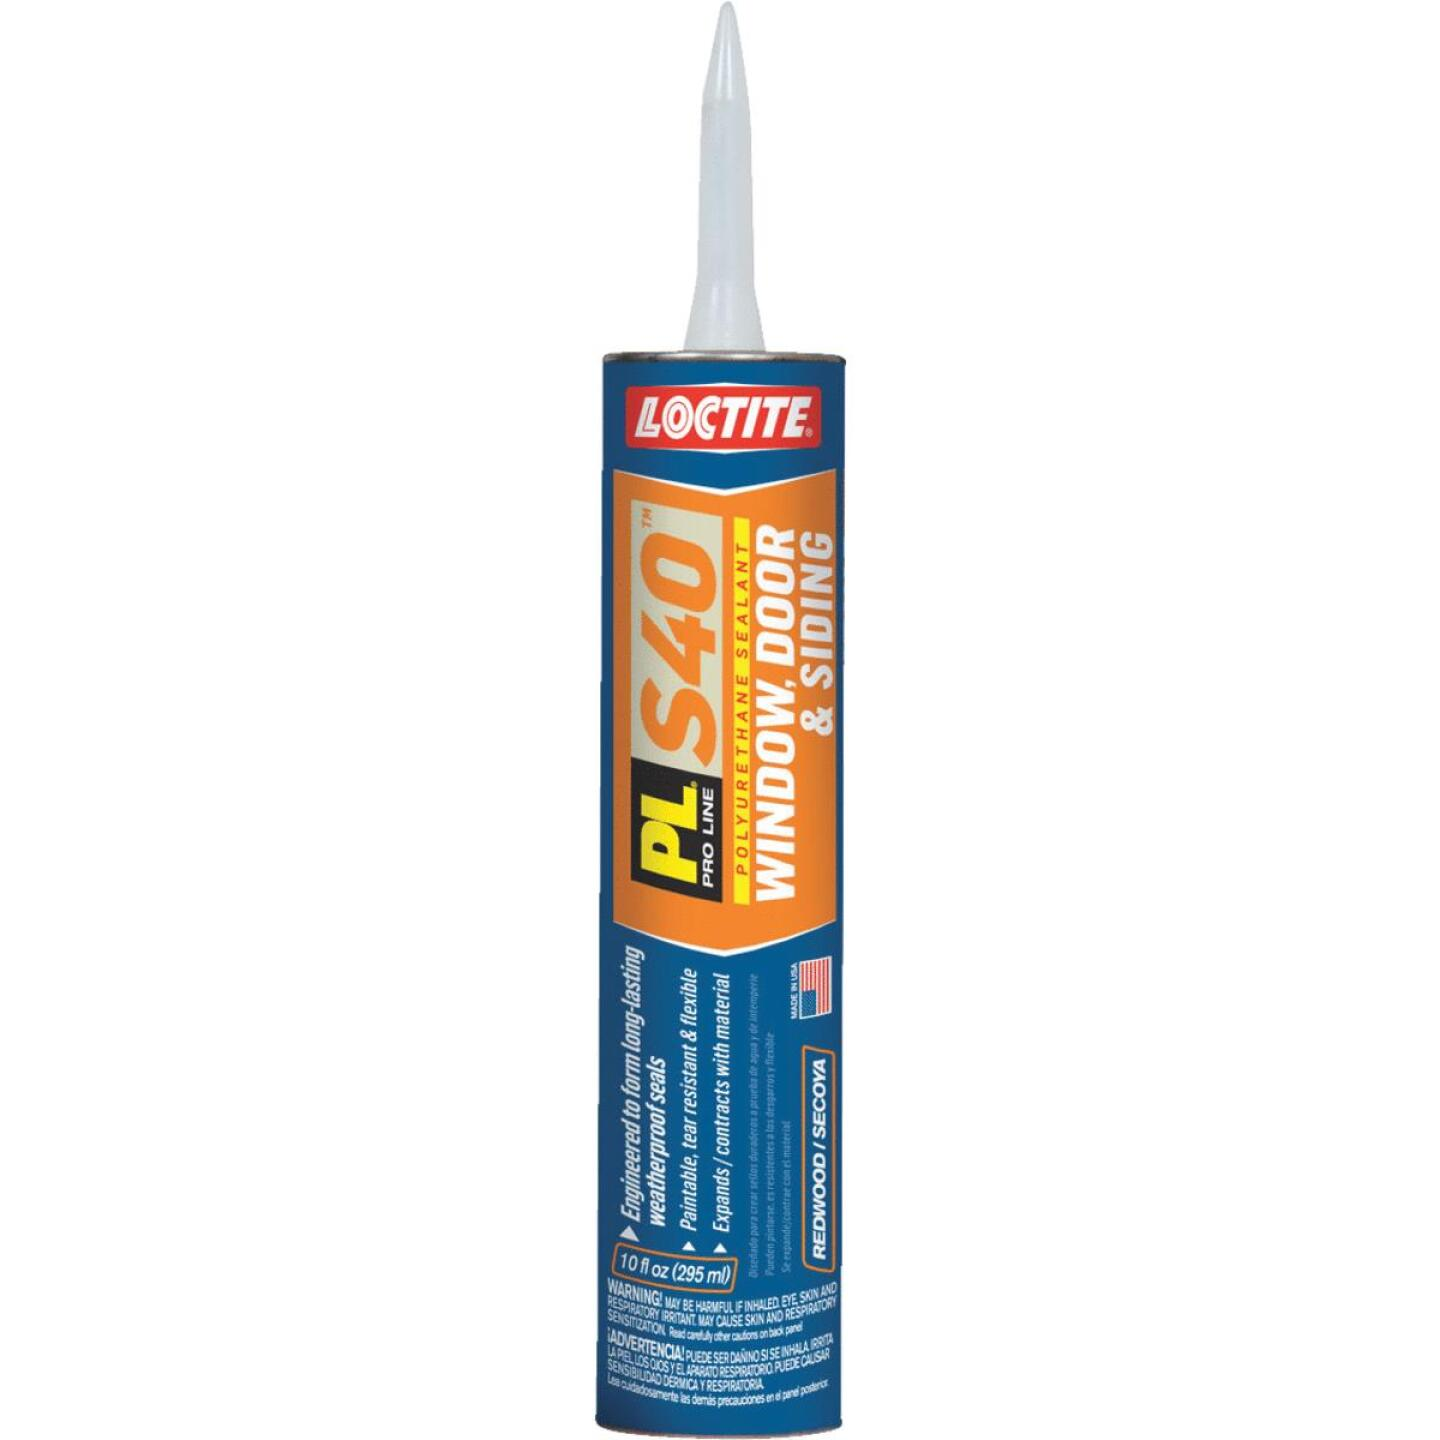 LOCTITE PL S40 10 Oz. Polyurethane Window, Door, & Siding Sealant, Redwood Image 1